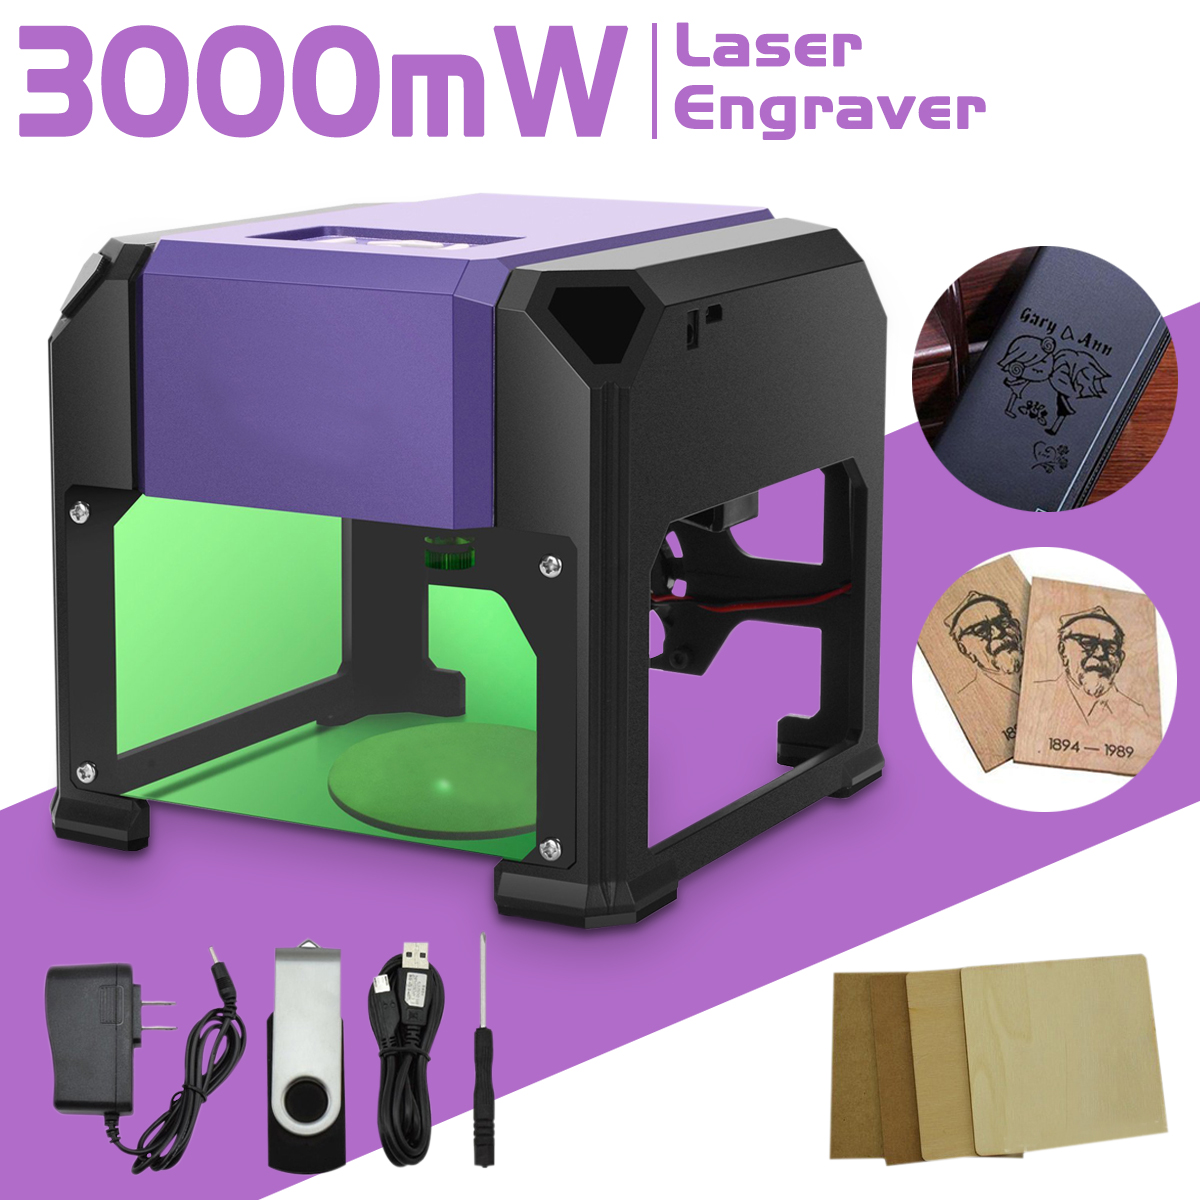 все цены на 3000mW USB Desktop Laser Engraver Machine DIY Logo Mark Printer Cutter CNC Laser Carving Machine 80x80mm Engraving Range онлайн